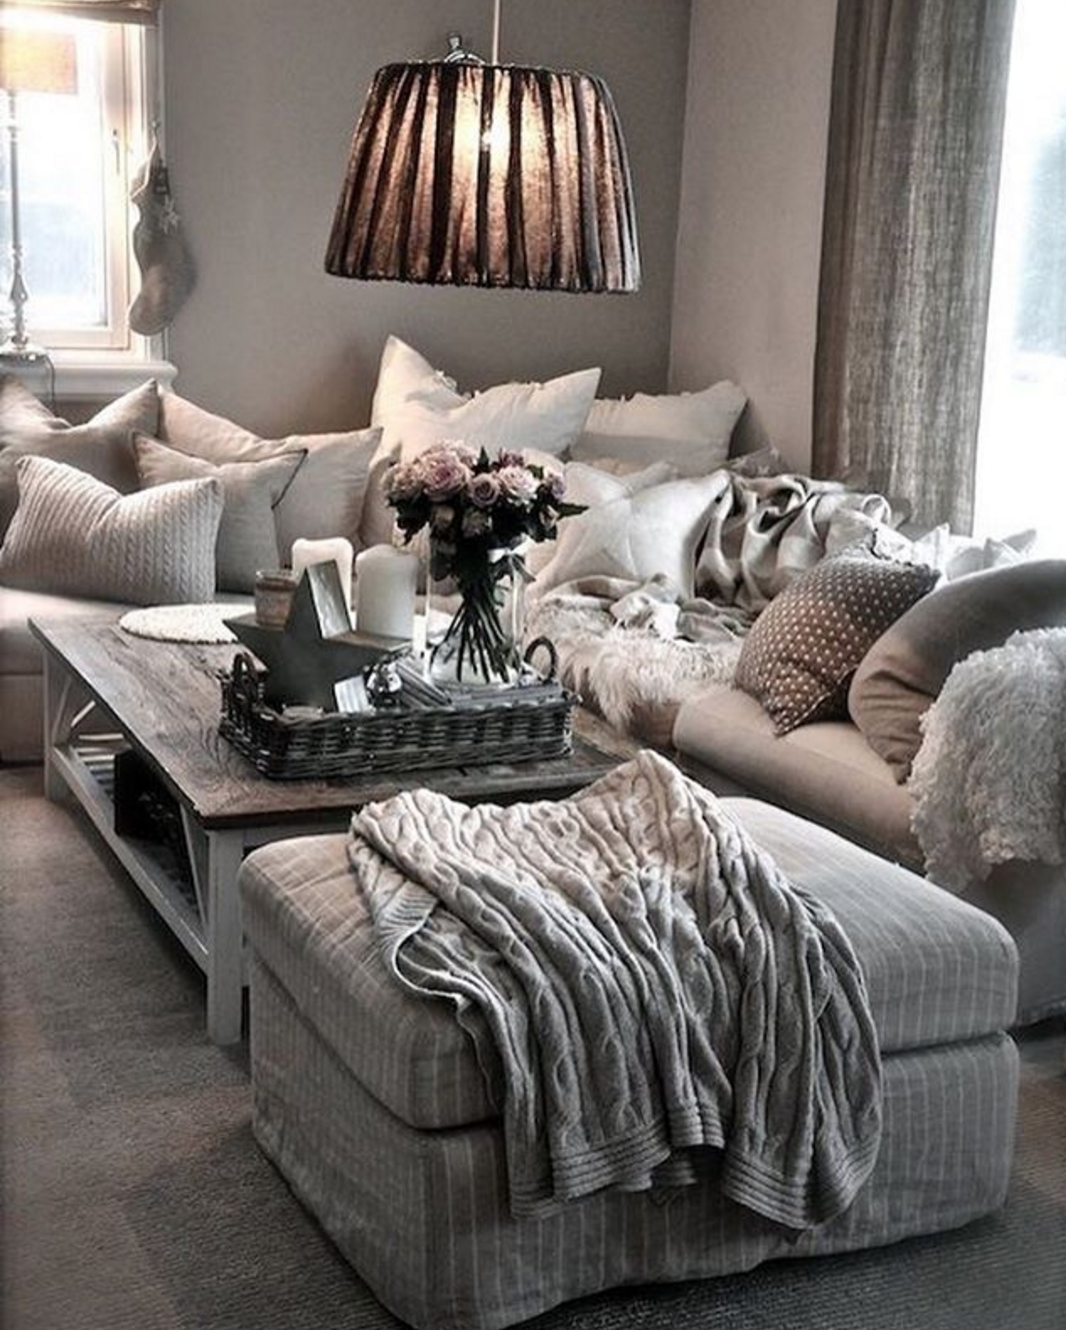 Pin by Juliet Nuccio on Room ideas | Home, Home decor ...